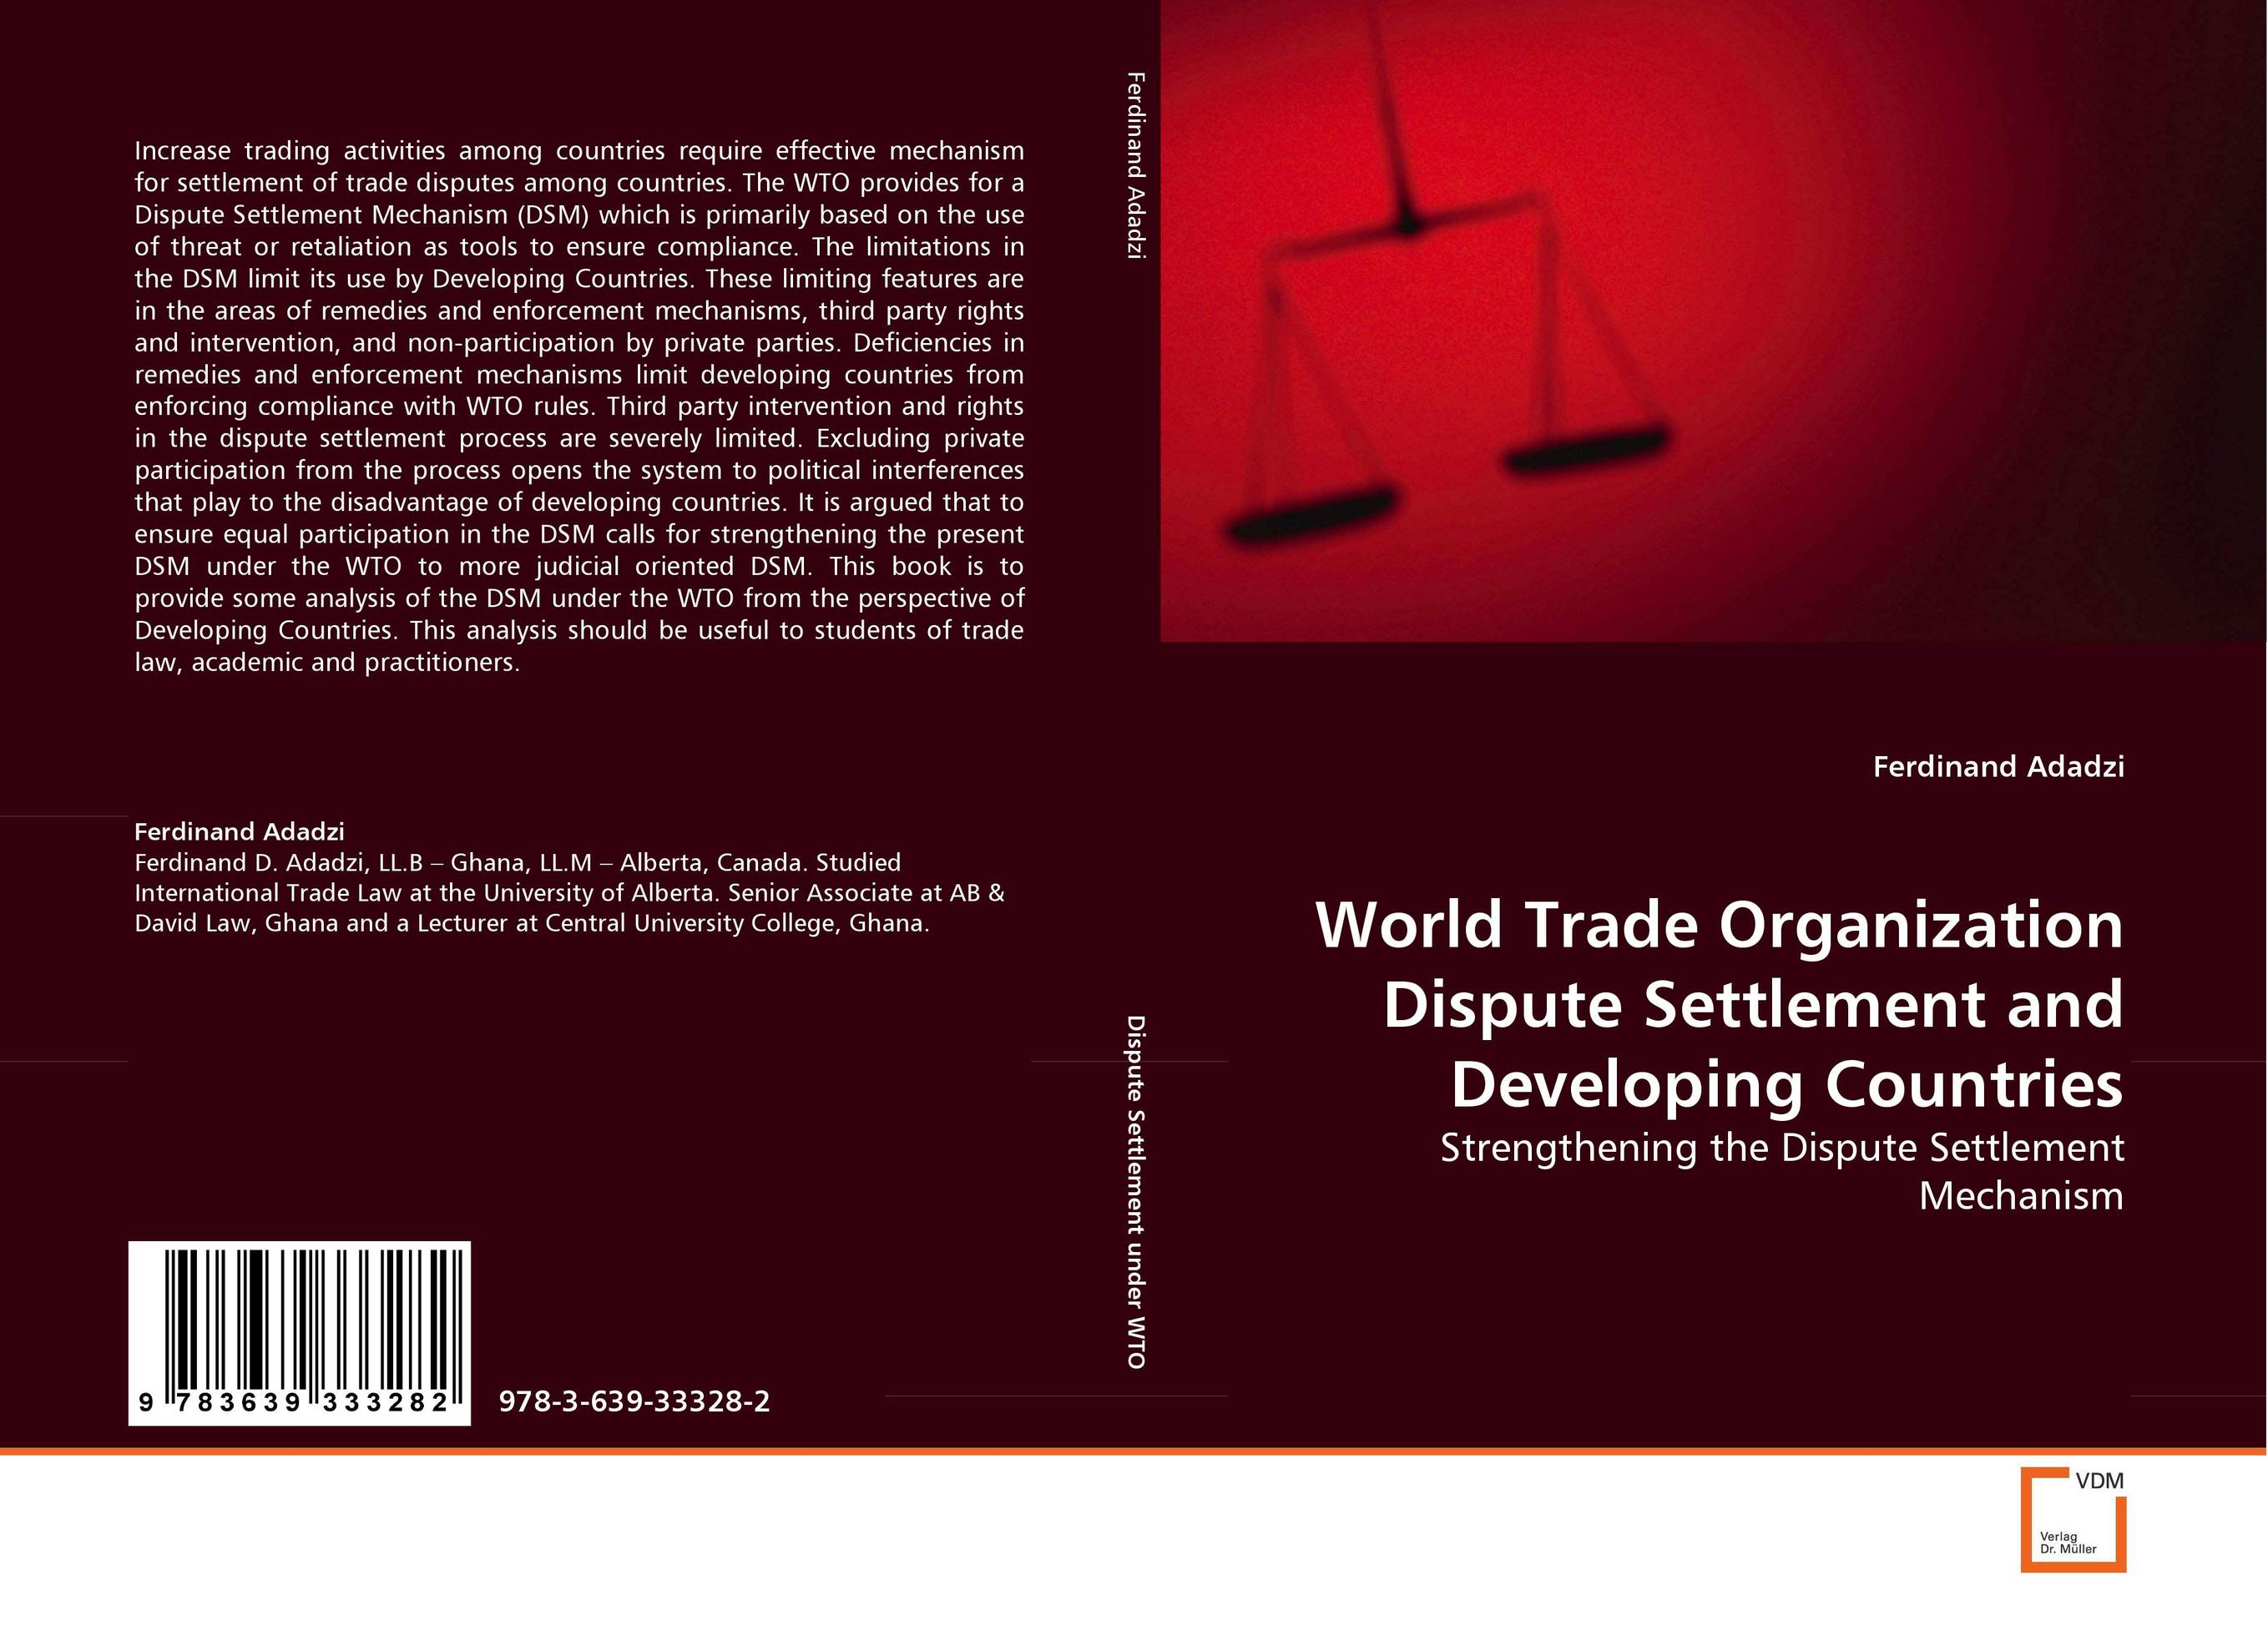 World Trade Organization Dispute Settlement and Developing Countries adventures in chaos – american intervention for reform in the third world